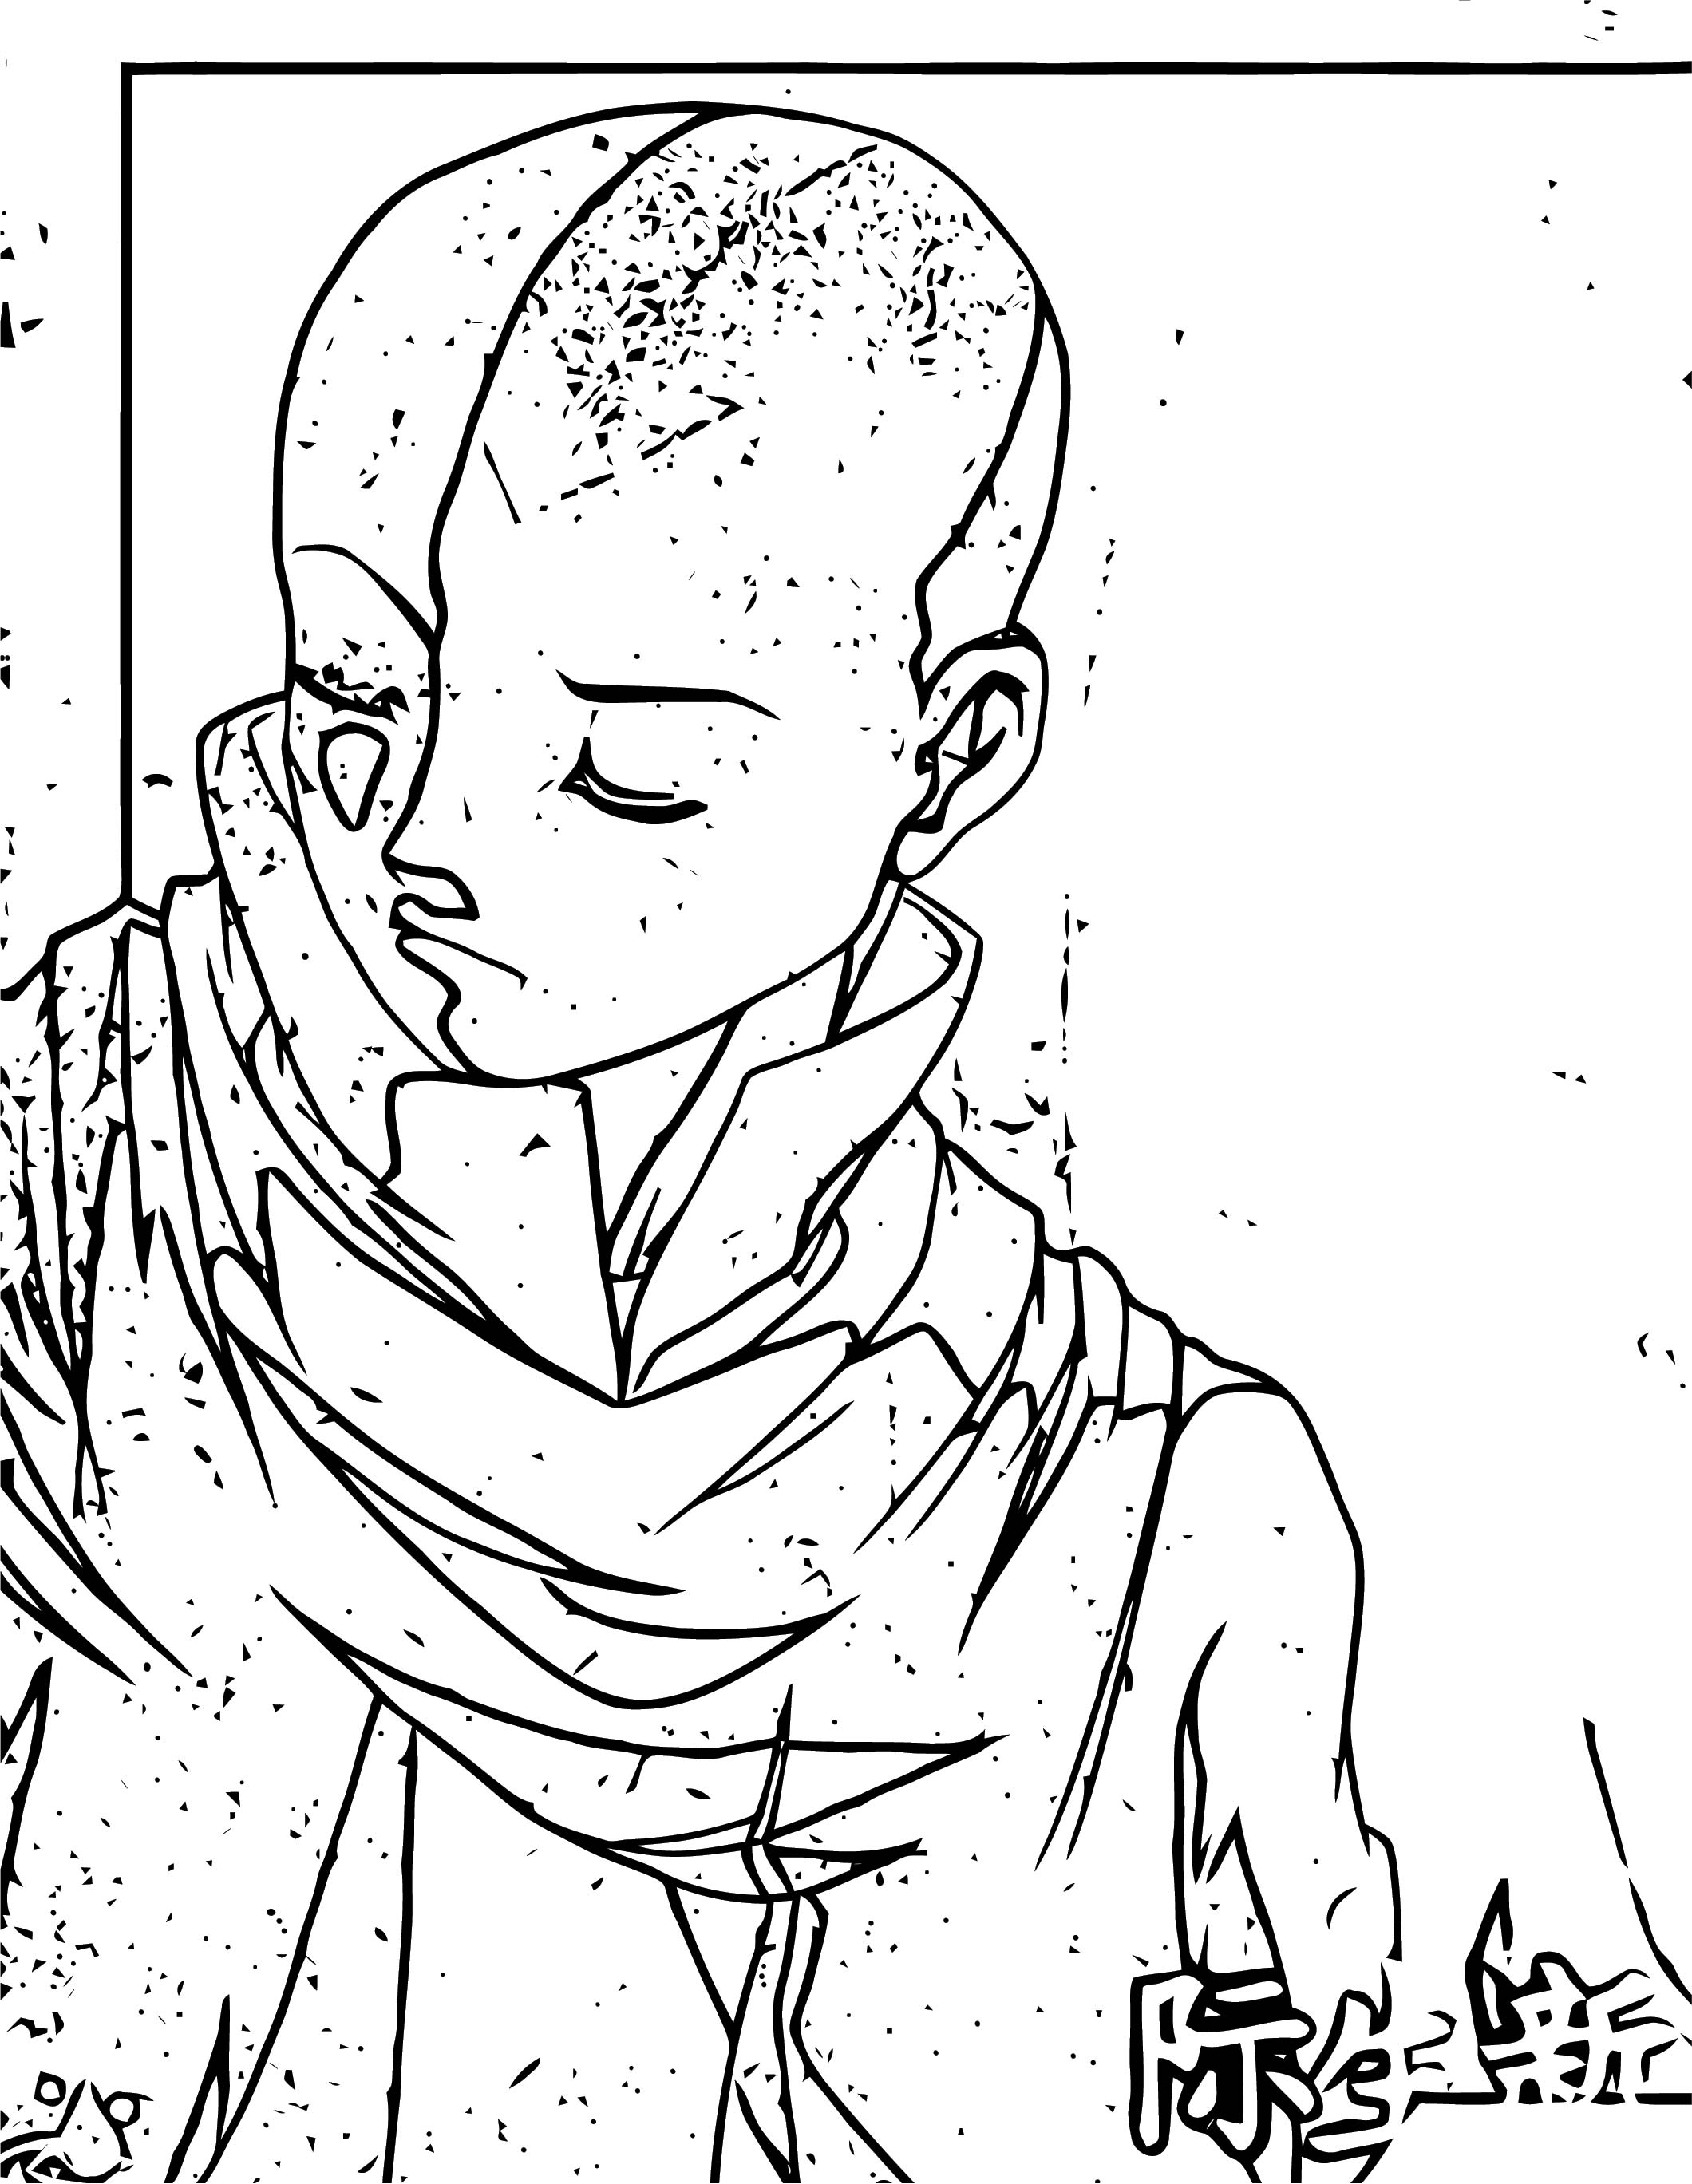 Aang Avatar The Last Airbender Avatar Aang Coloring Page 2141452 2141452